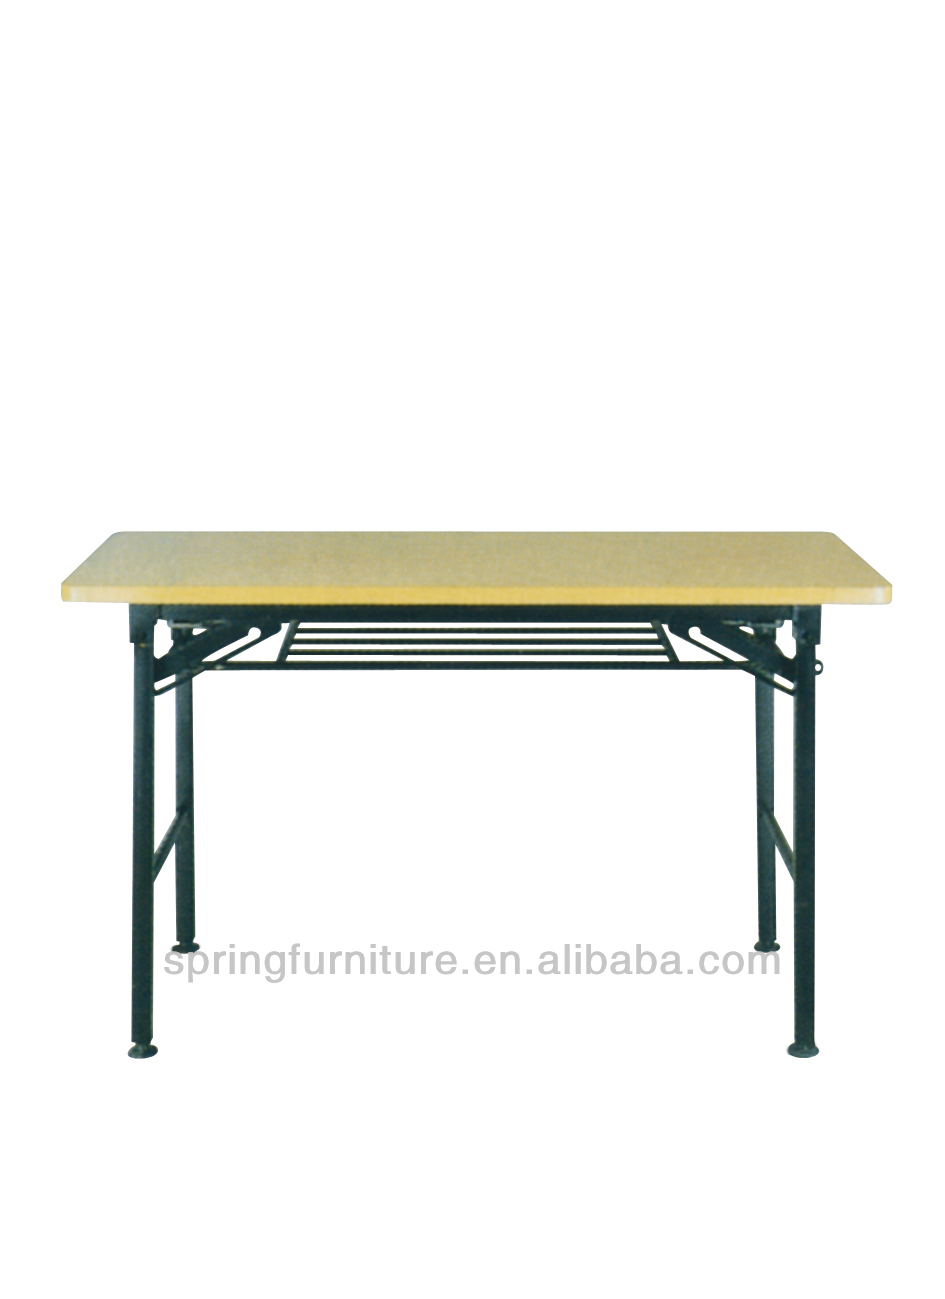 school desk for sales;training center desk